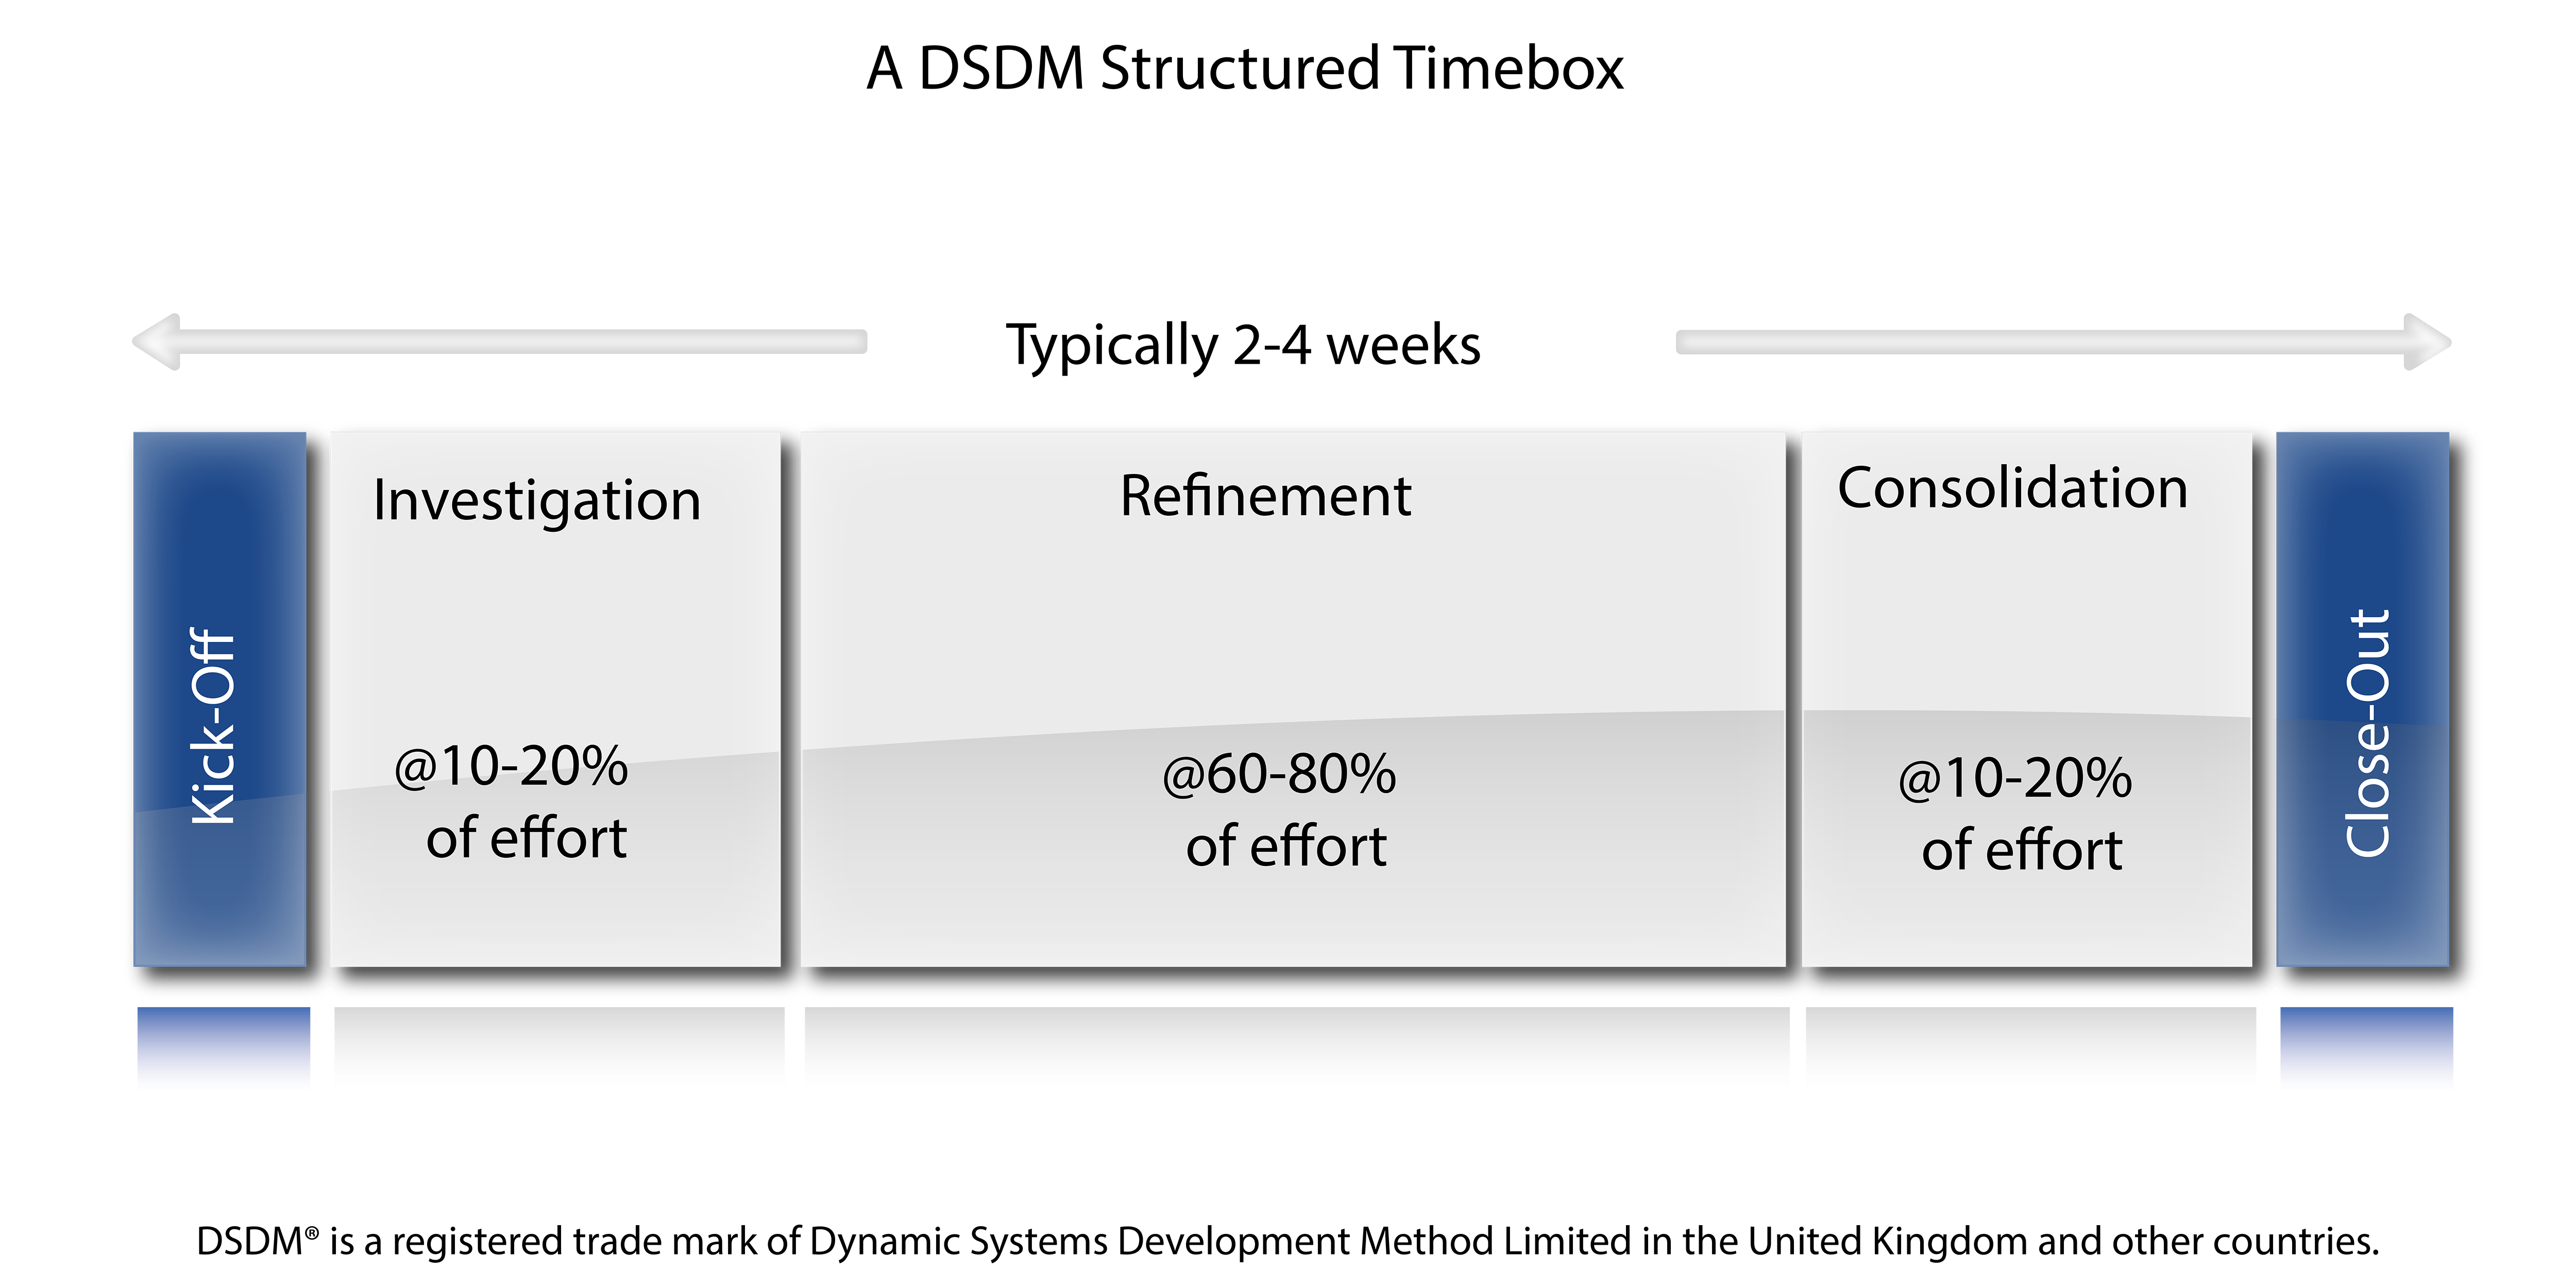 dsdm terms of reference In time management, timeboxing allocates a fixed time period, called a time box, to each planned activity dynamic systems development method (dsdm).